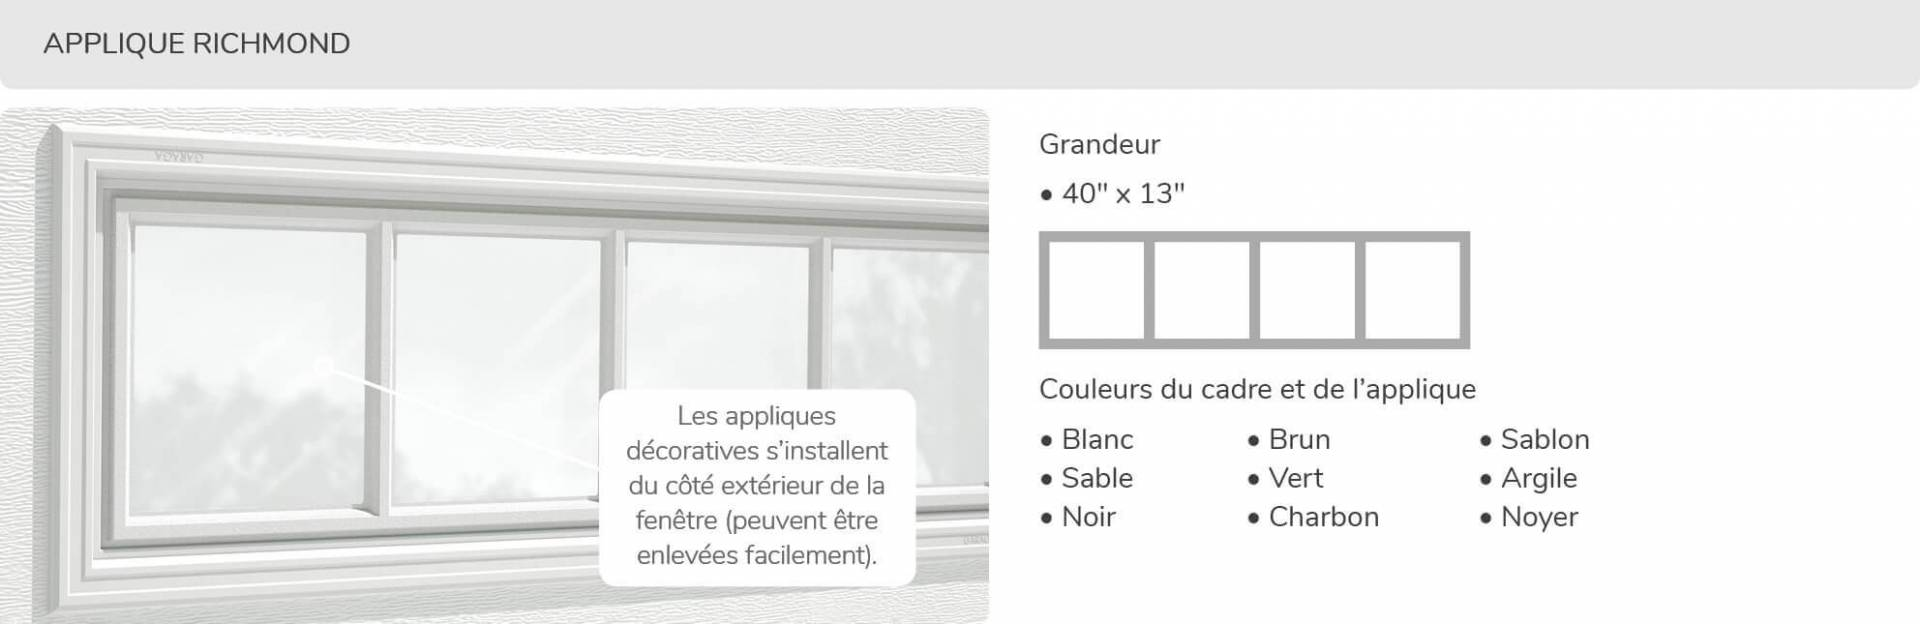 Applique Richmond, 40' x 13', disponible pour la porte R-16